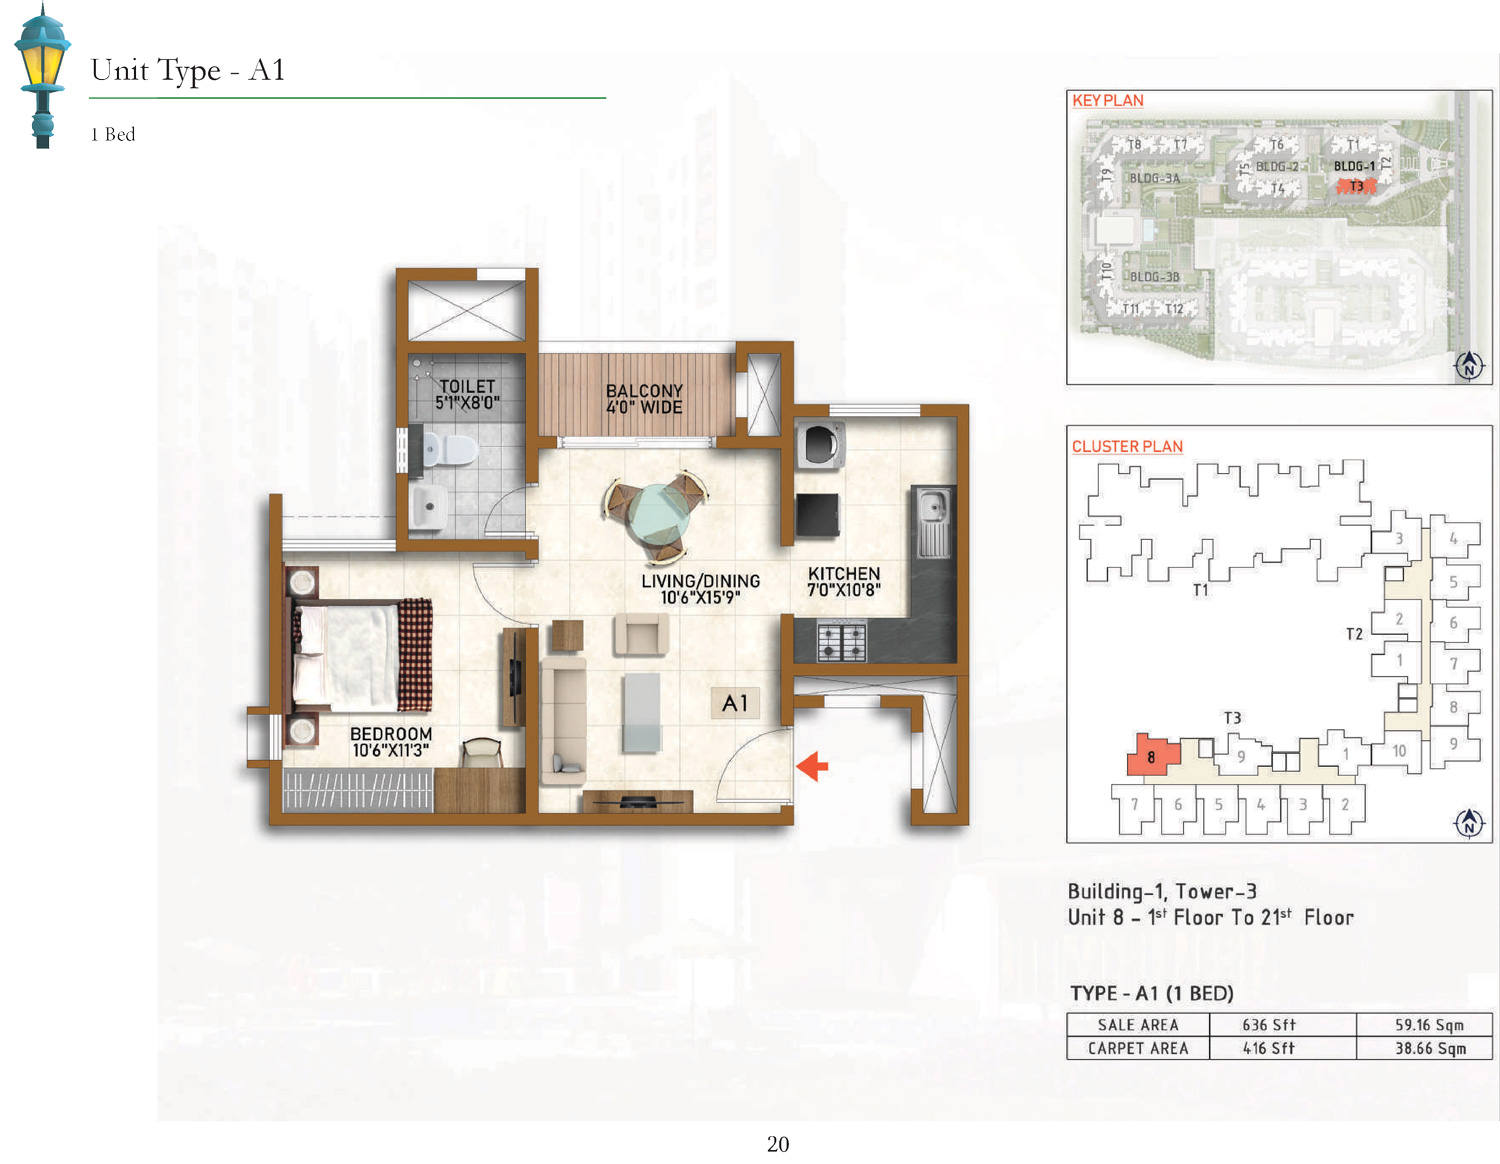 Type A1 - 636 Sq Ft